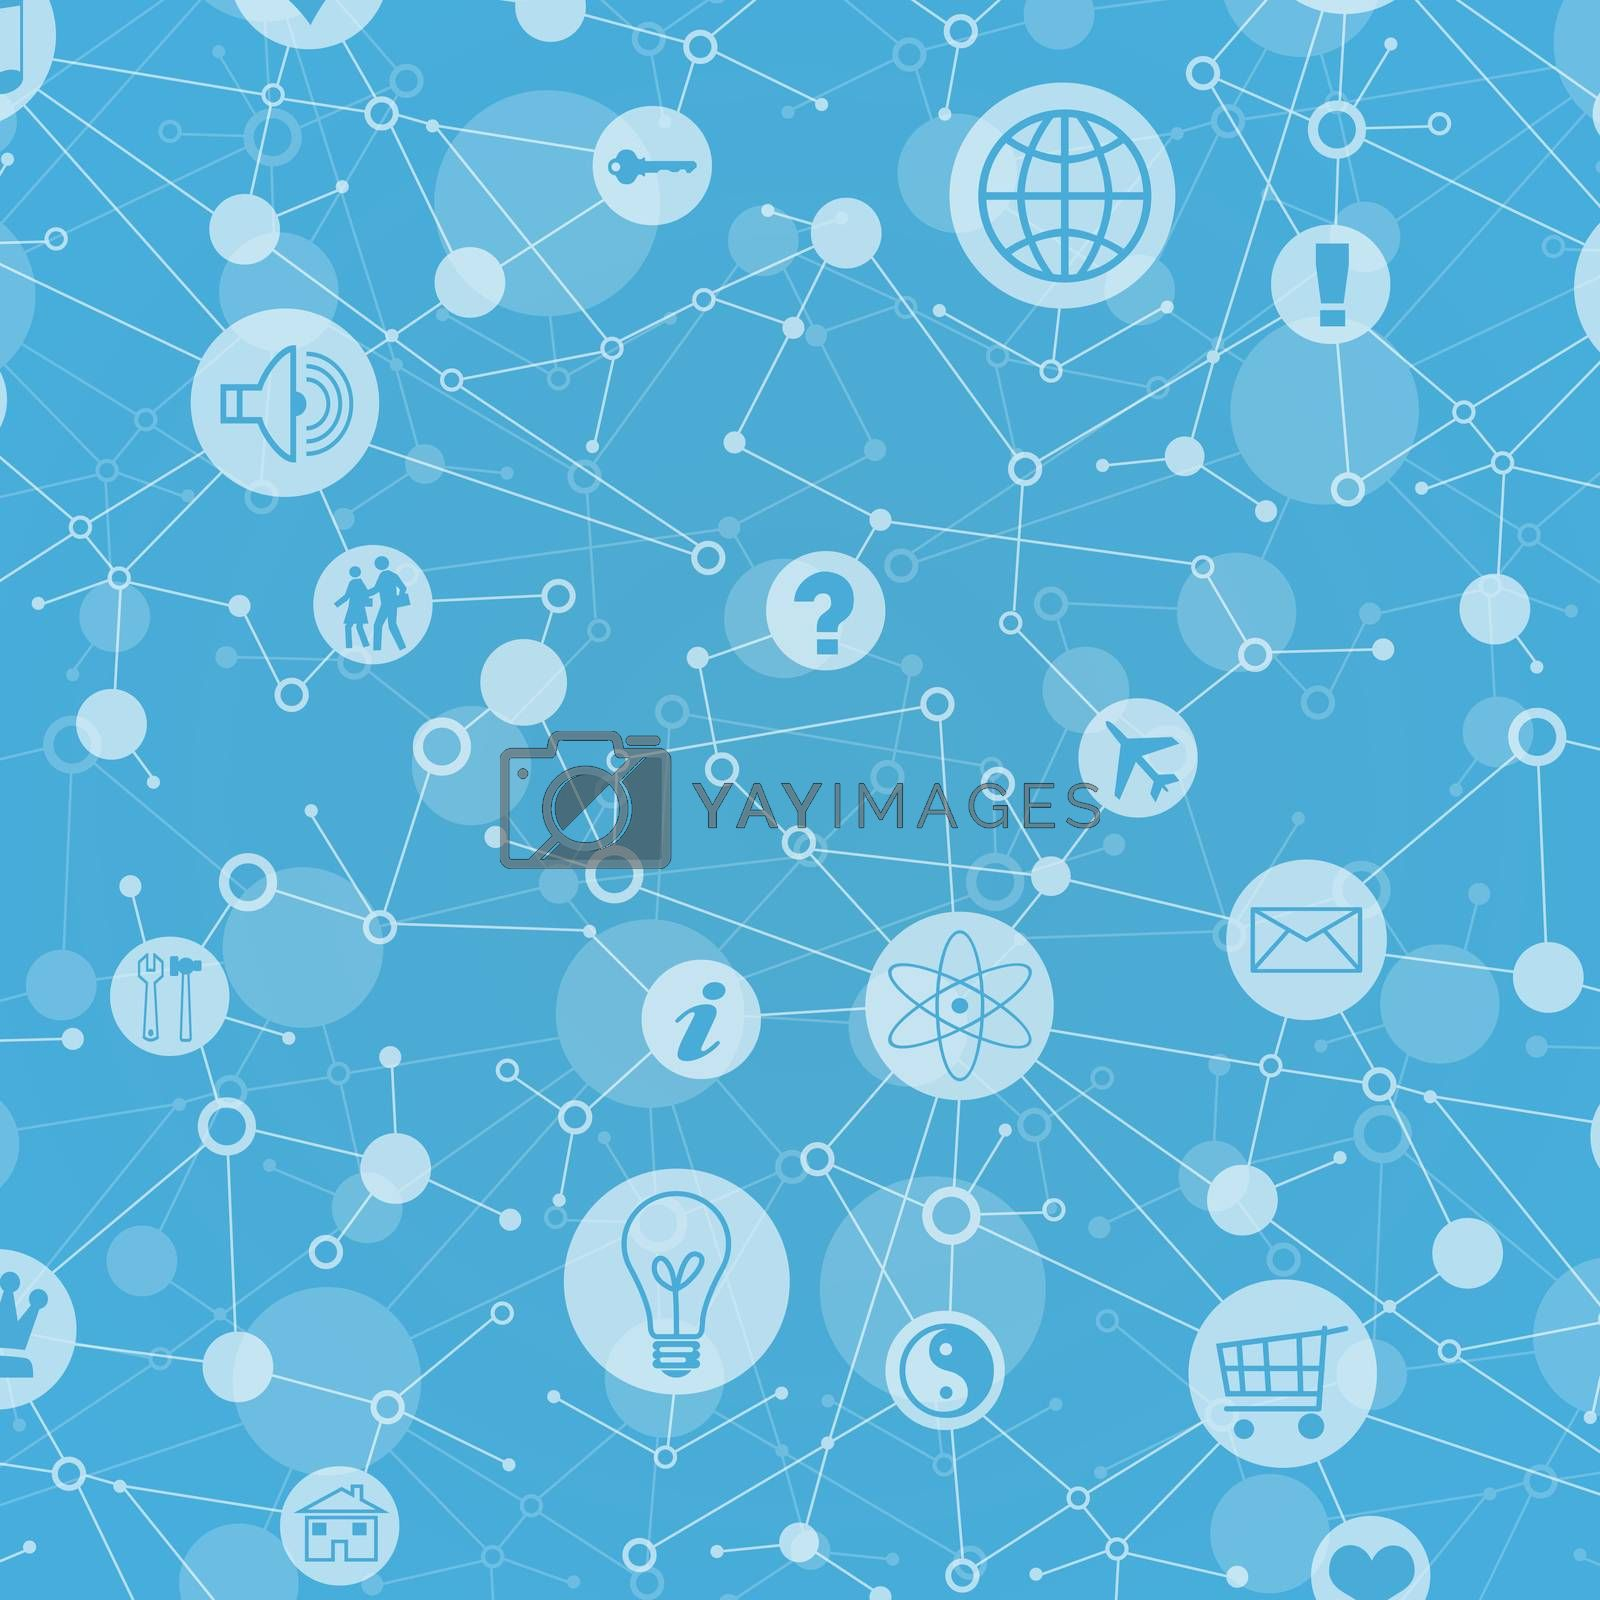 Social network. In lattice sites are various icons by cherezoff